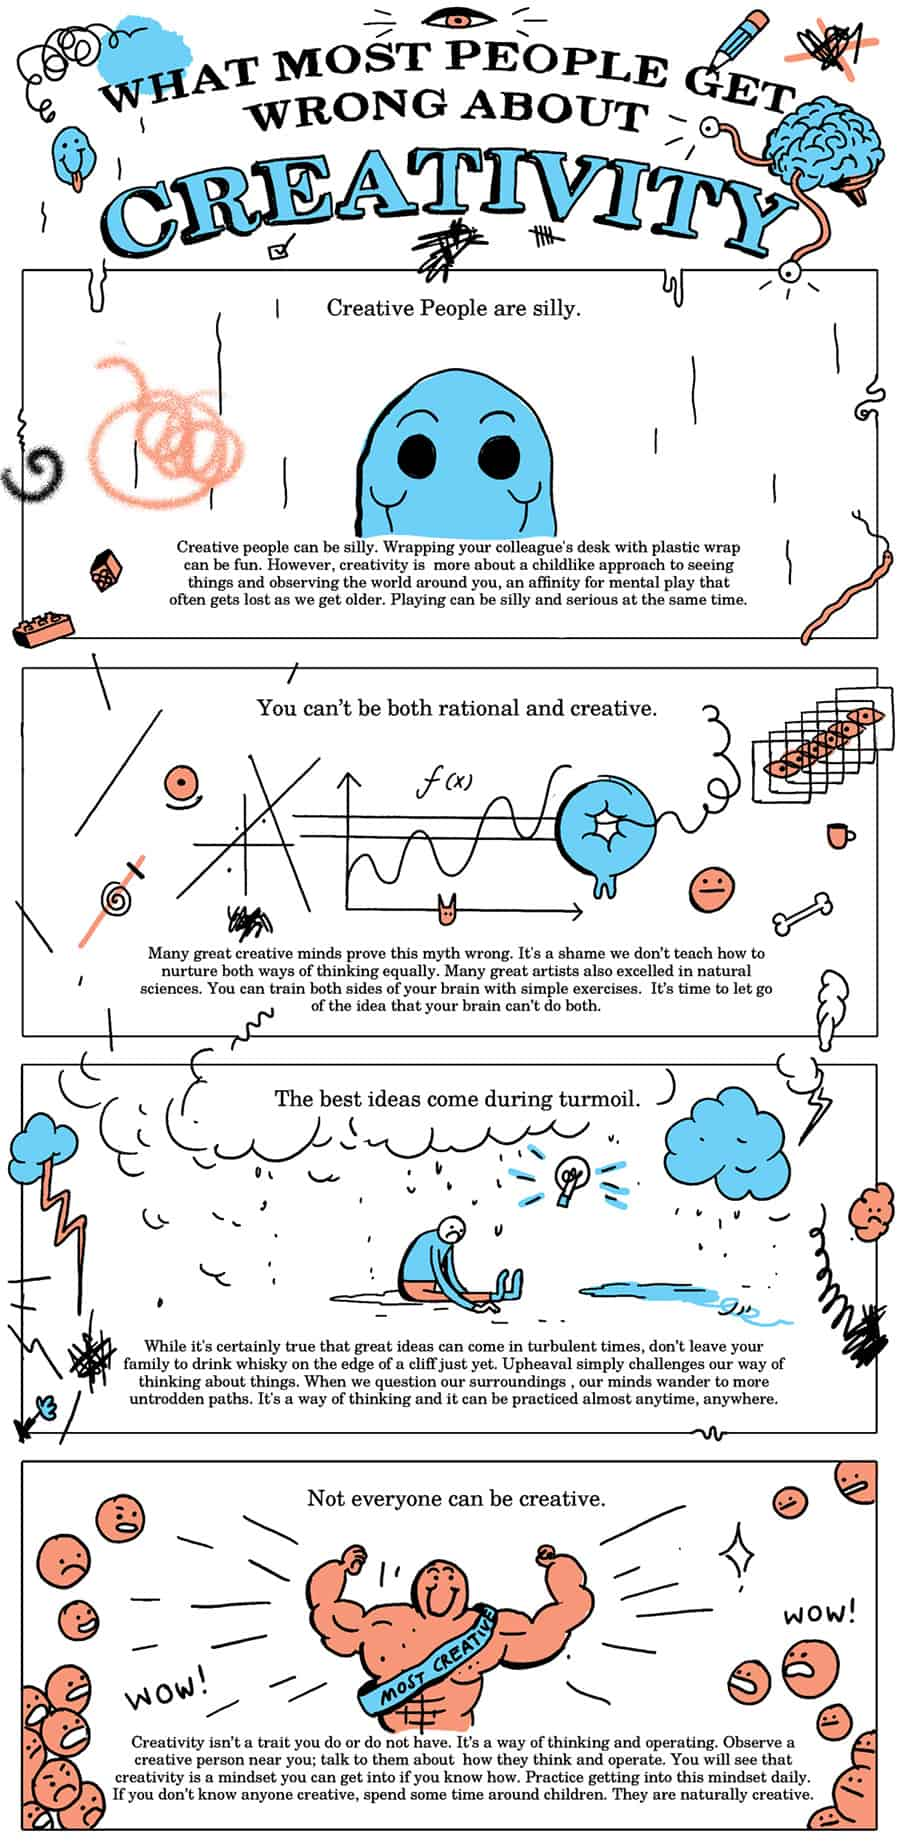 What Most People Get Wrong about Creativity comic